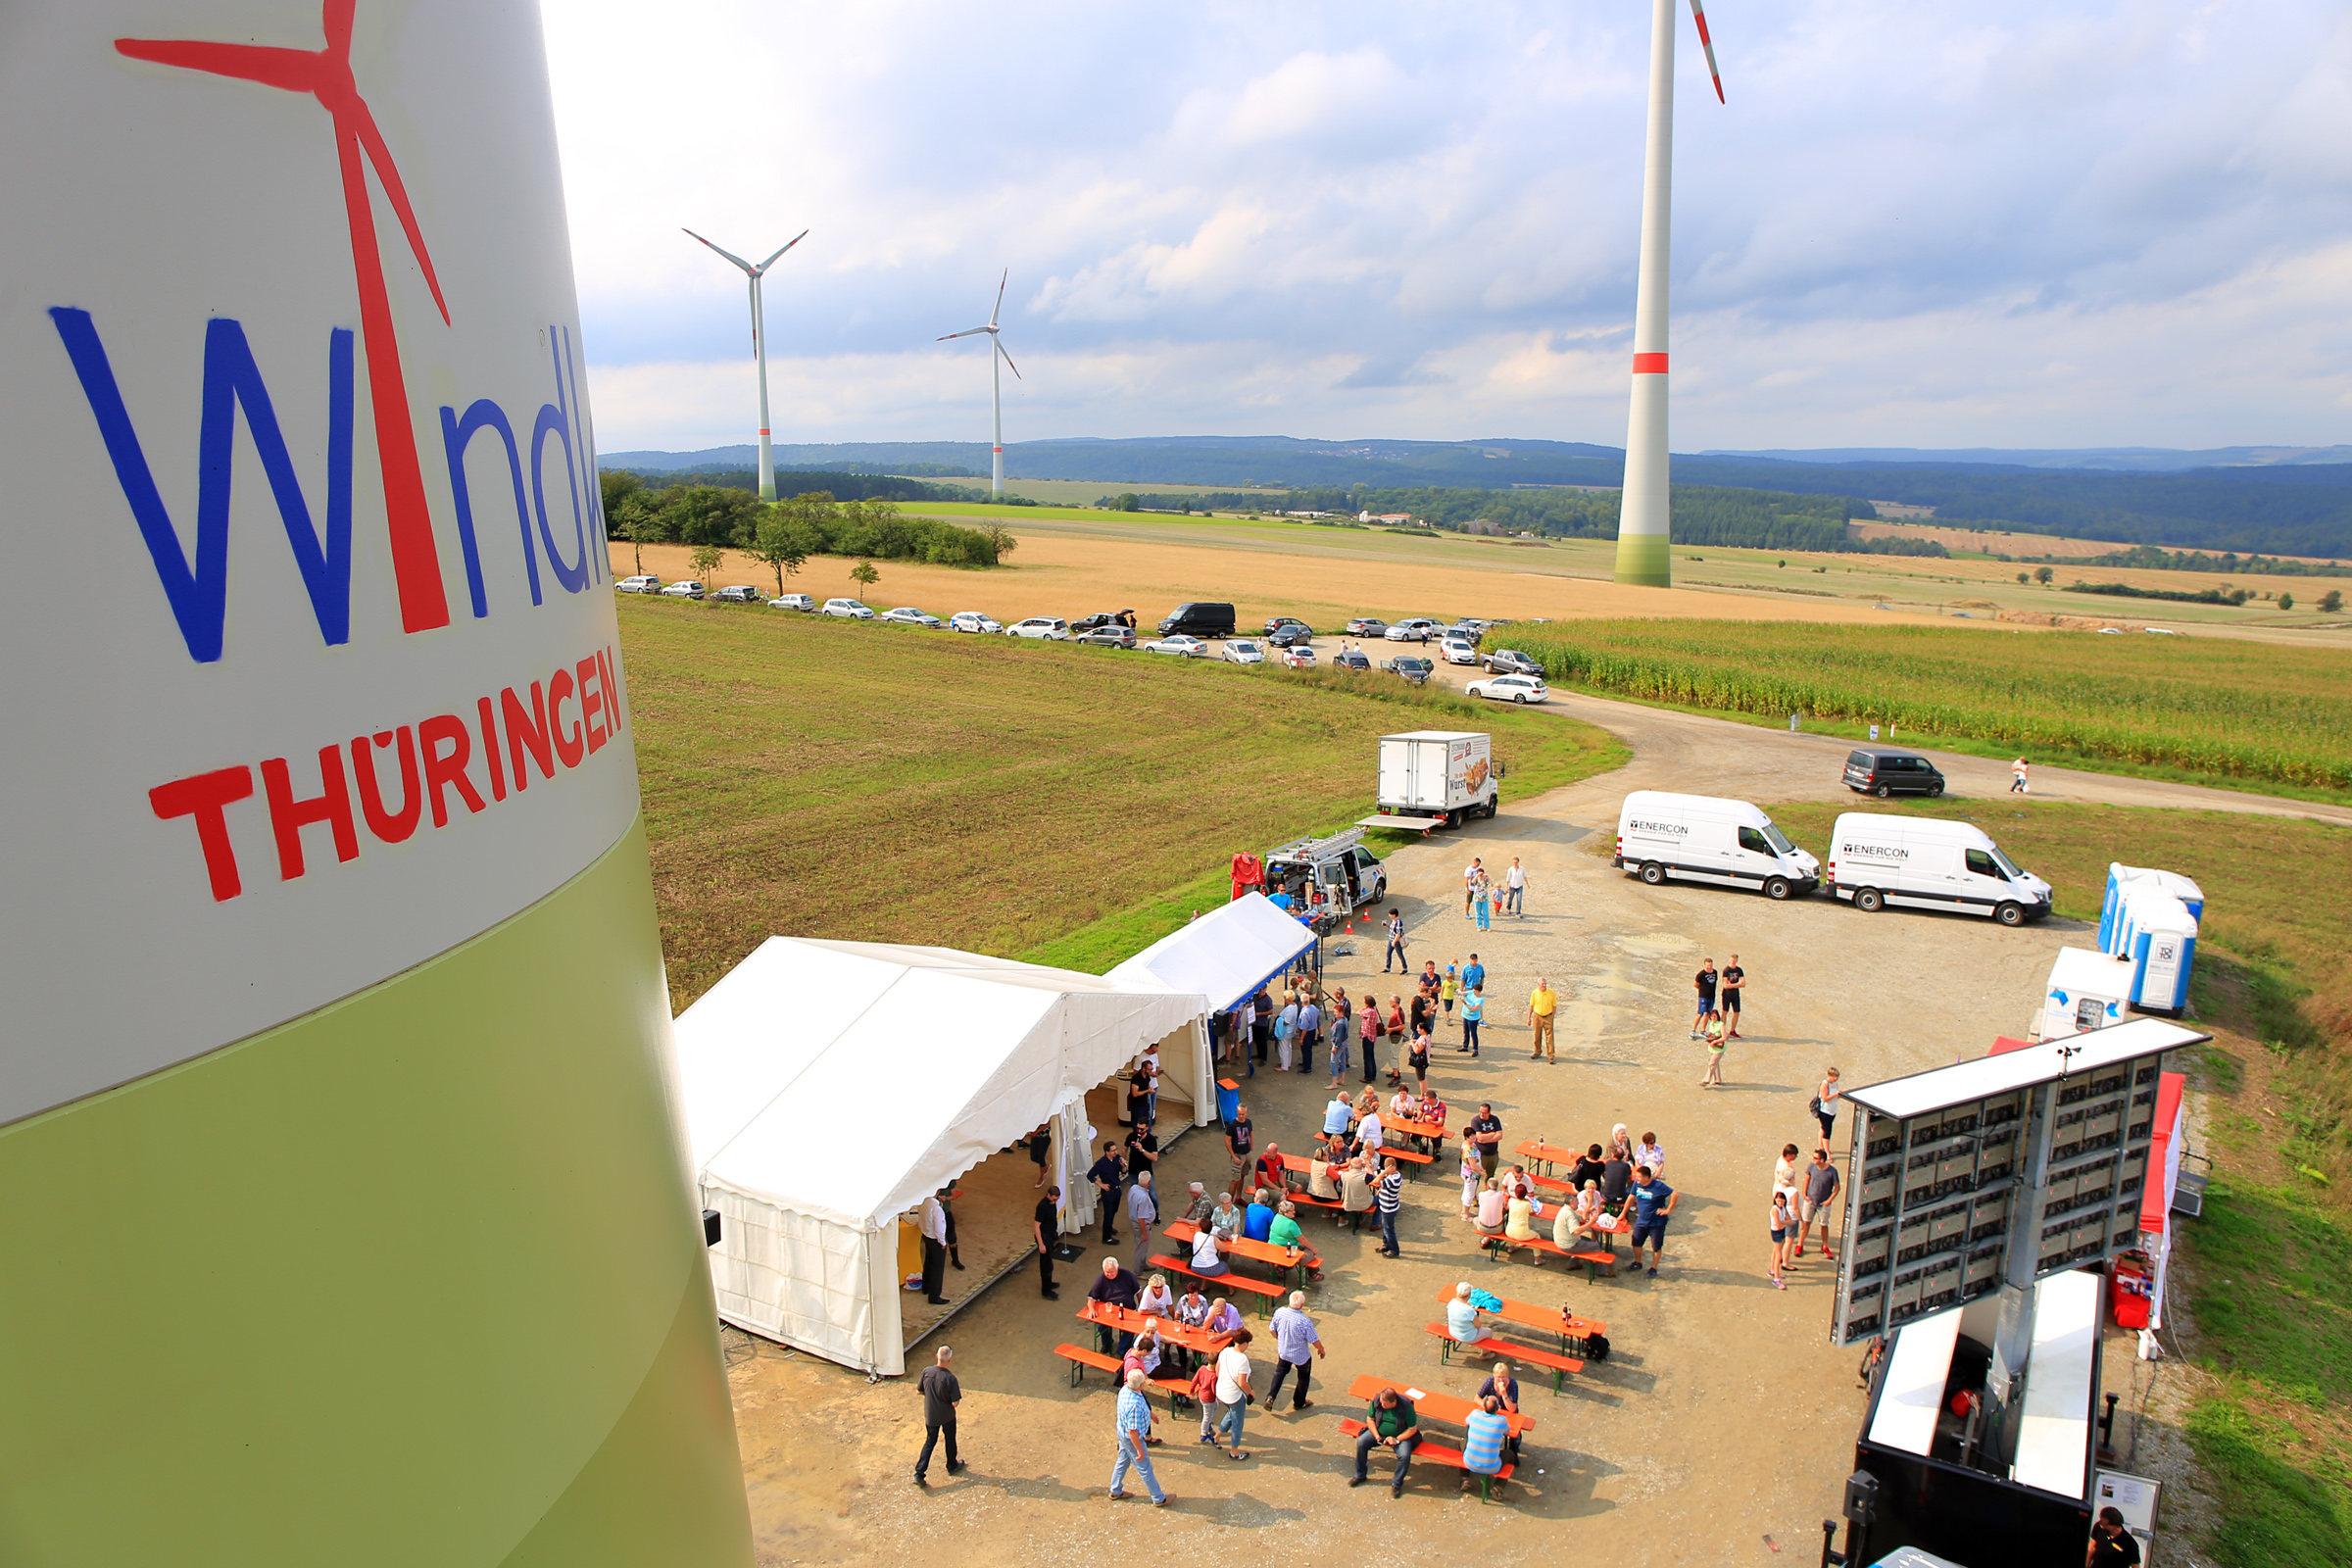 Windparkfest